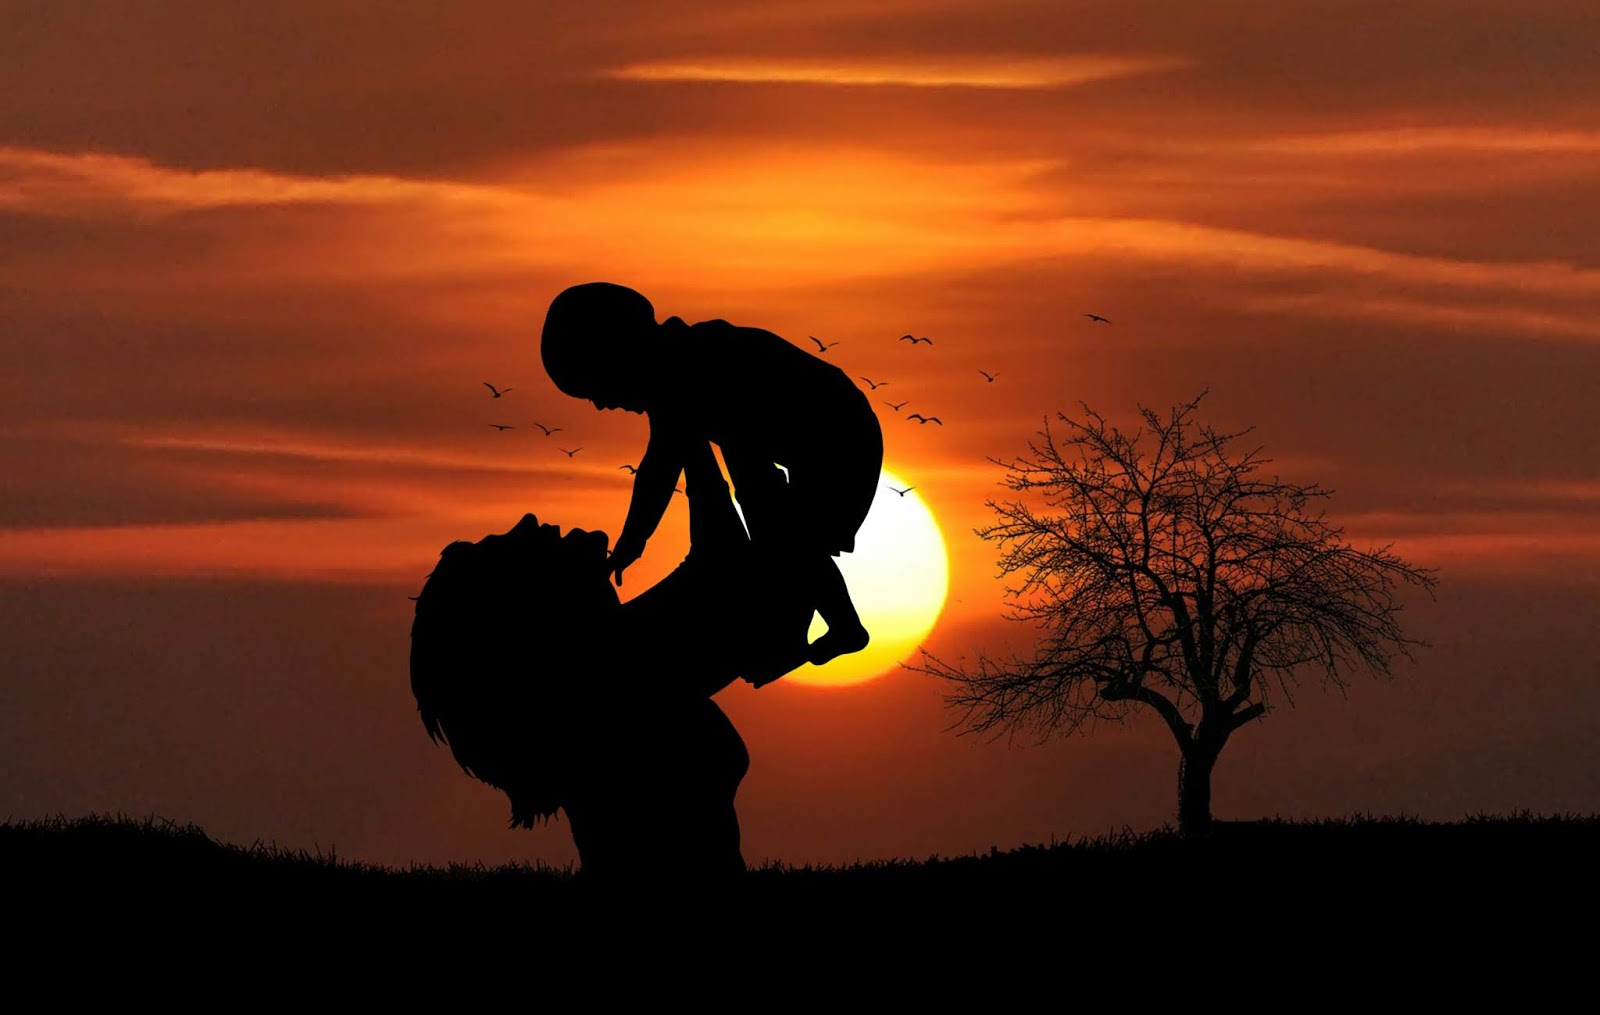 mother, baby, love, sunset, beach, playing, happy, together, silhouette, tree, sun, dusk, family, happiness, joyful